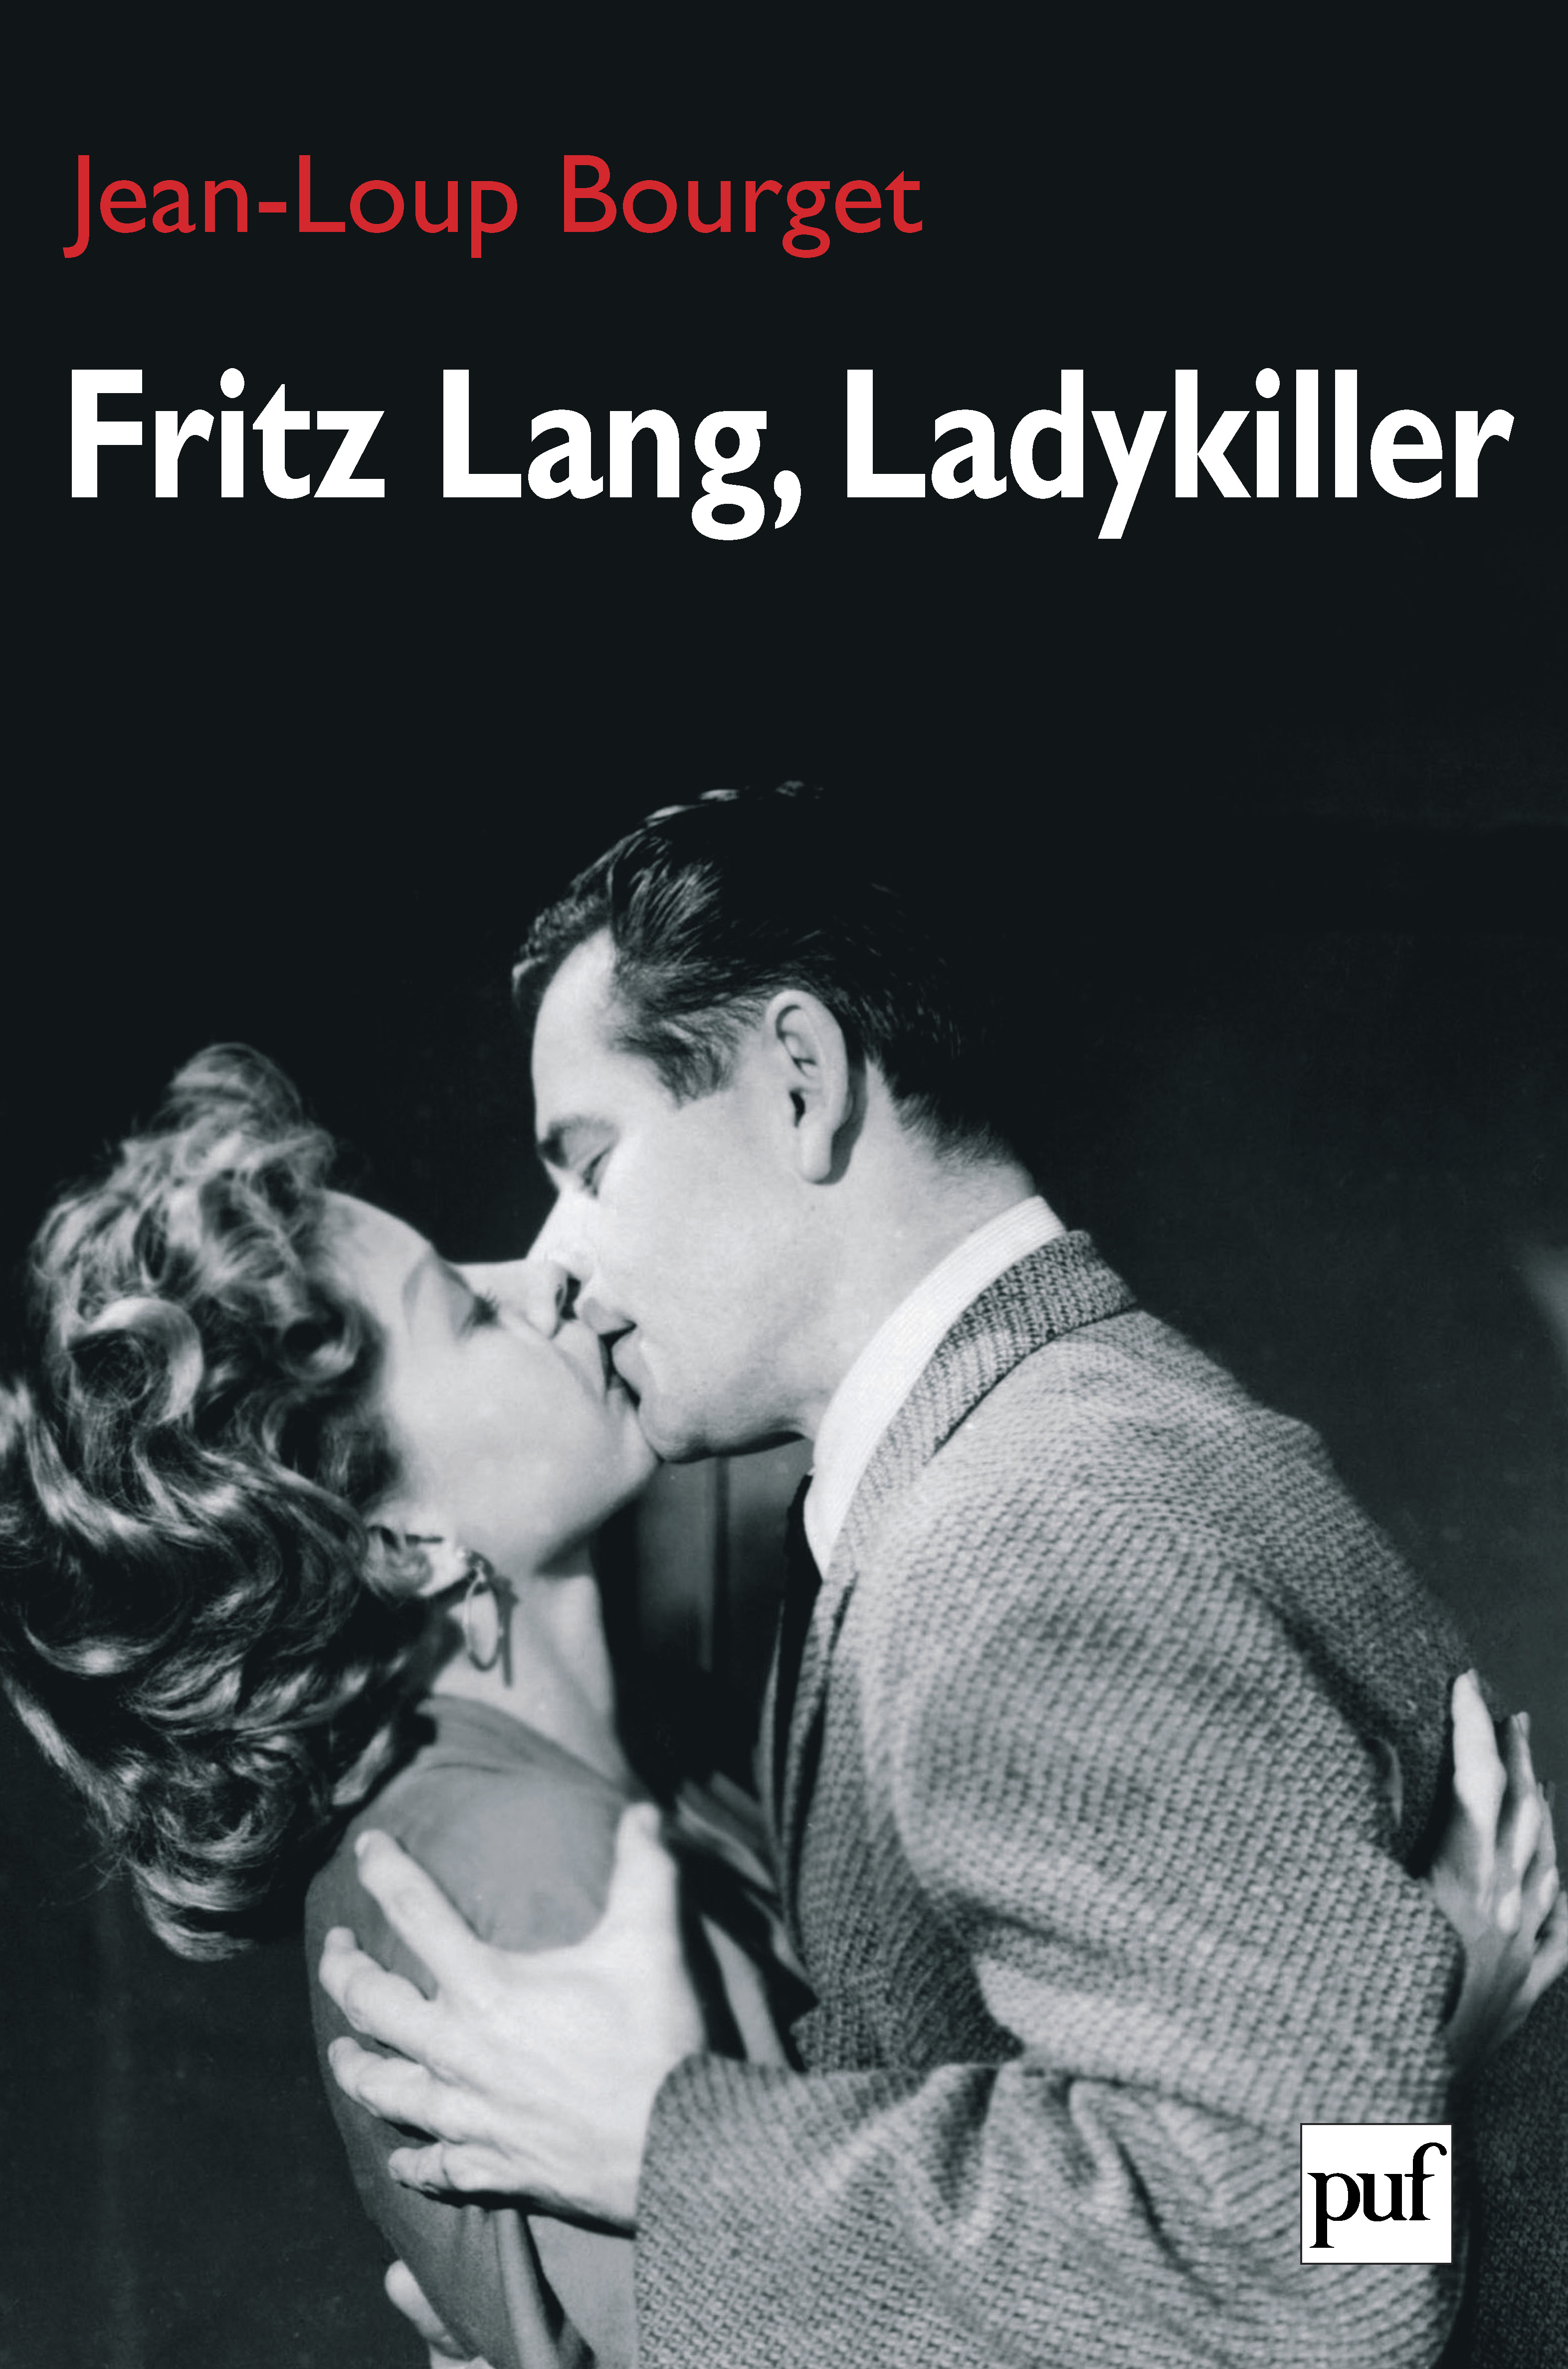 Fritz Lang Ladykiller Jean Loup Bourget Cairn Info